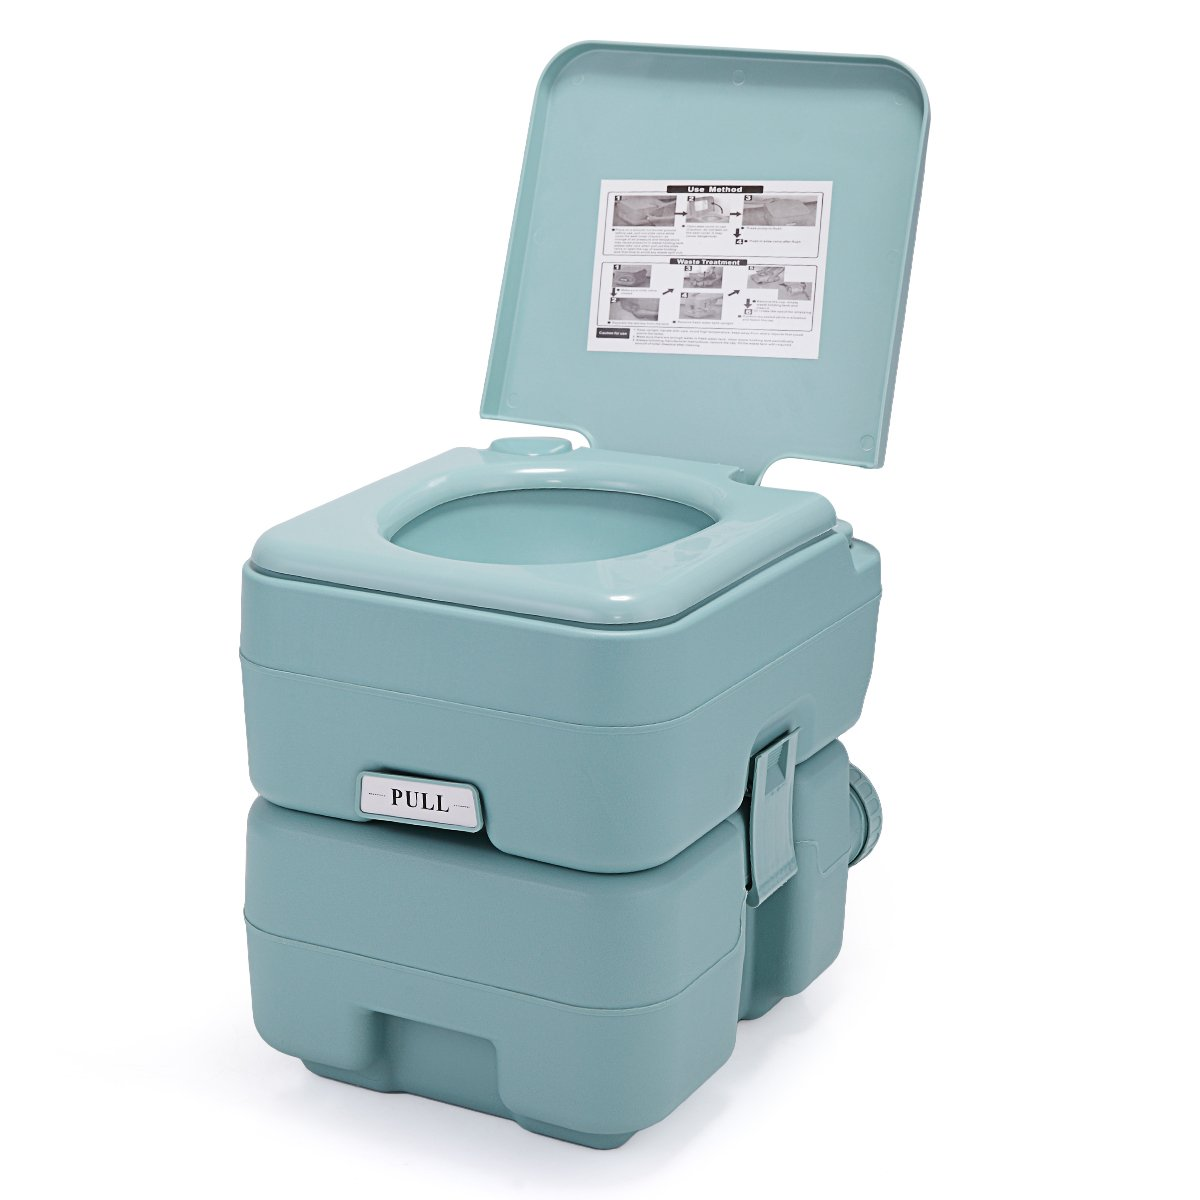 LAZYMOON Portable Toliet 5 Gallon 20L Outdoor Camping Toilet Potty, Green